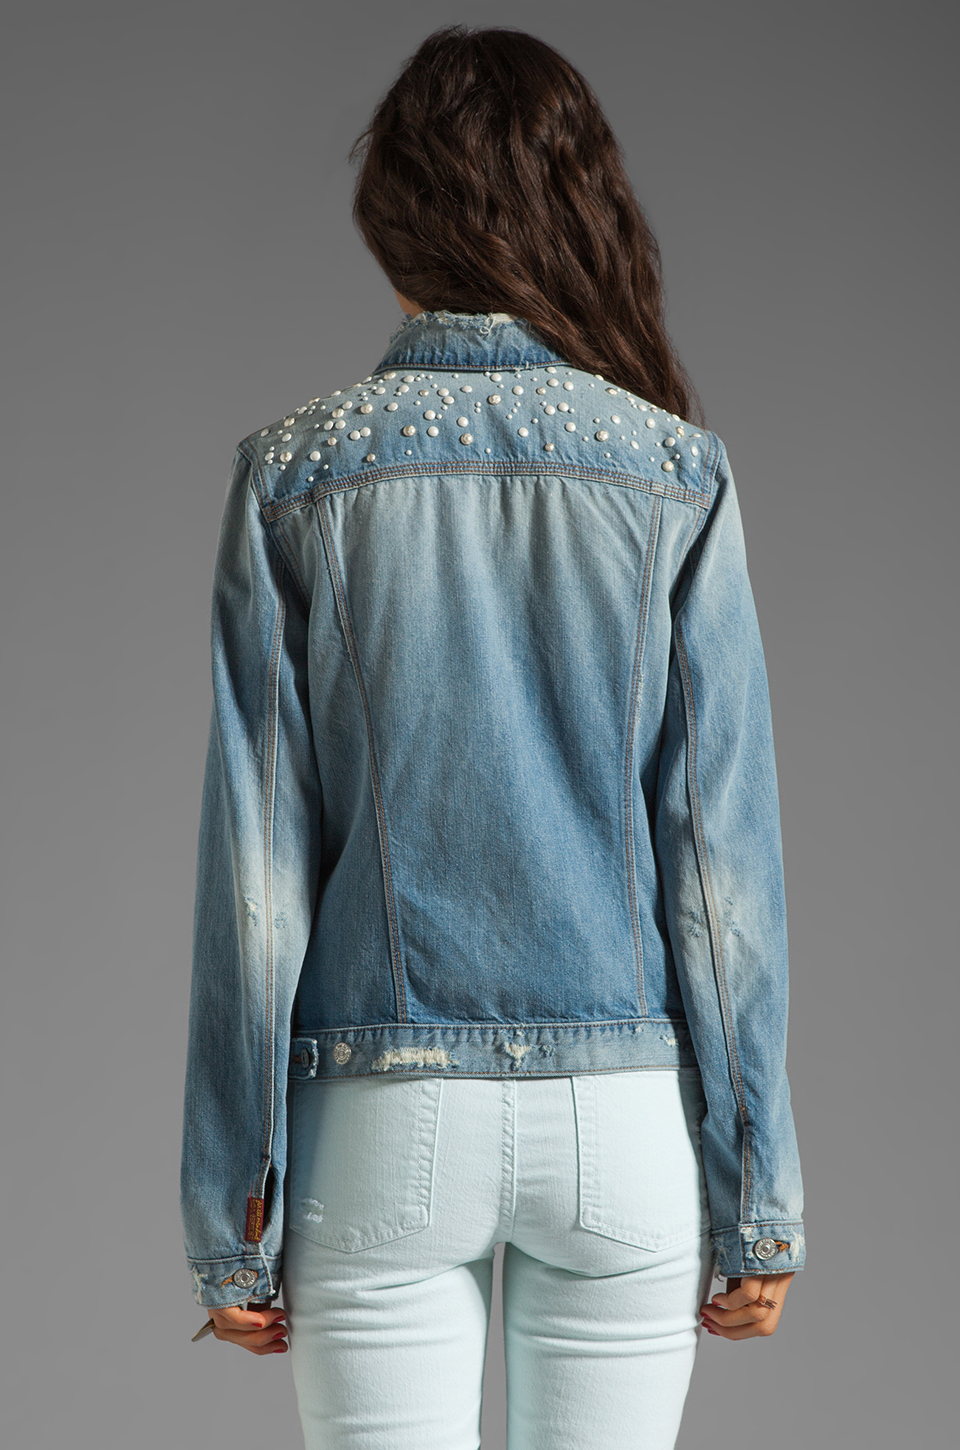 7 For All Mankind 7 For All Mankind Denim Jacket with Pearls in Light Destroyed